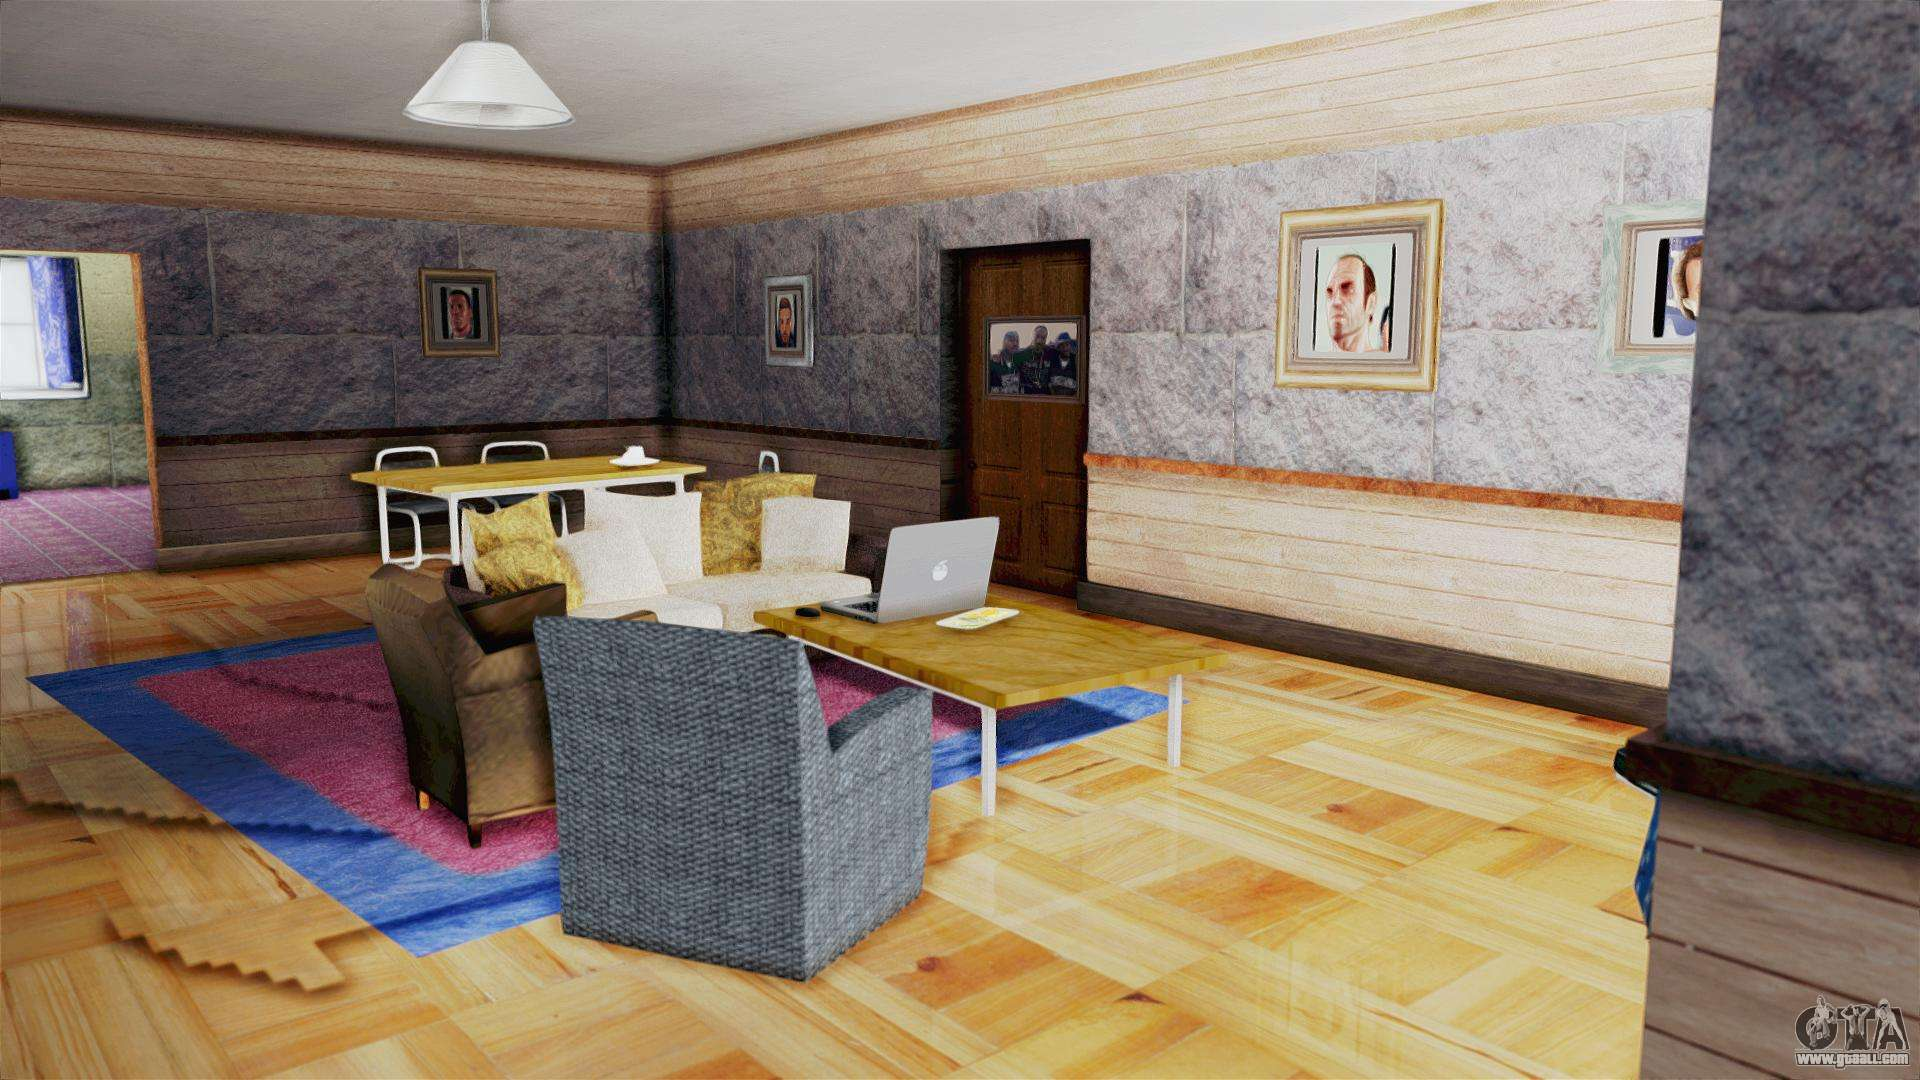 Cjs house new interior for gta san andreas for New interior